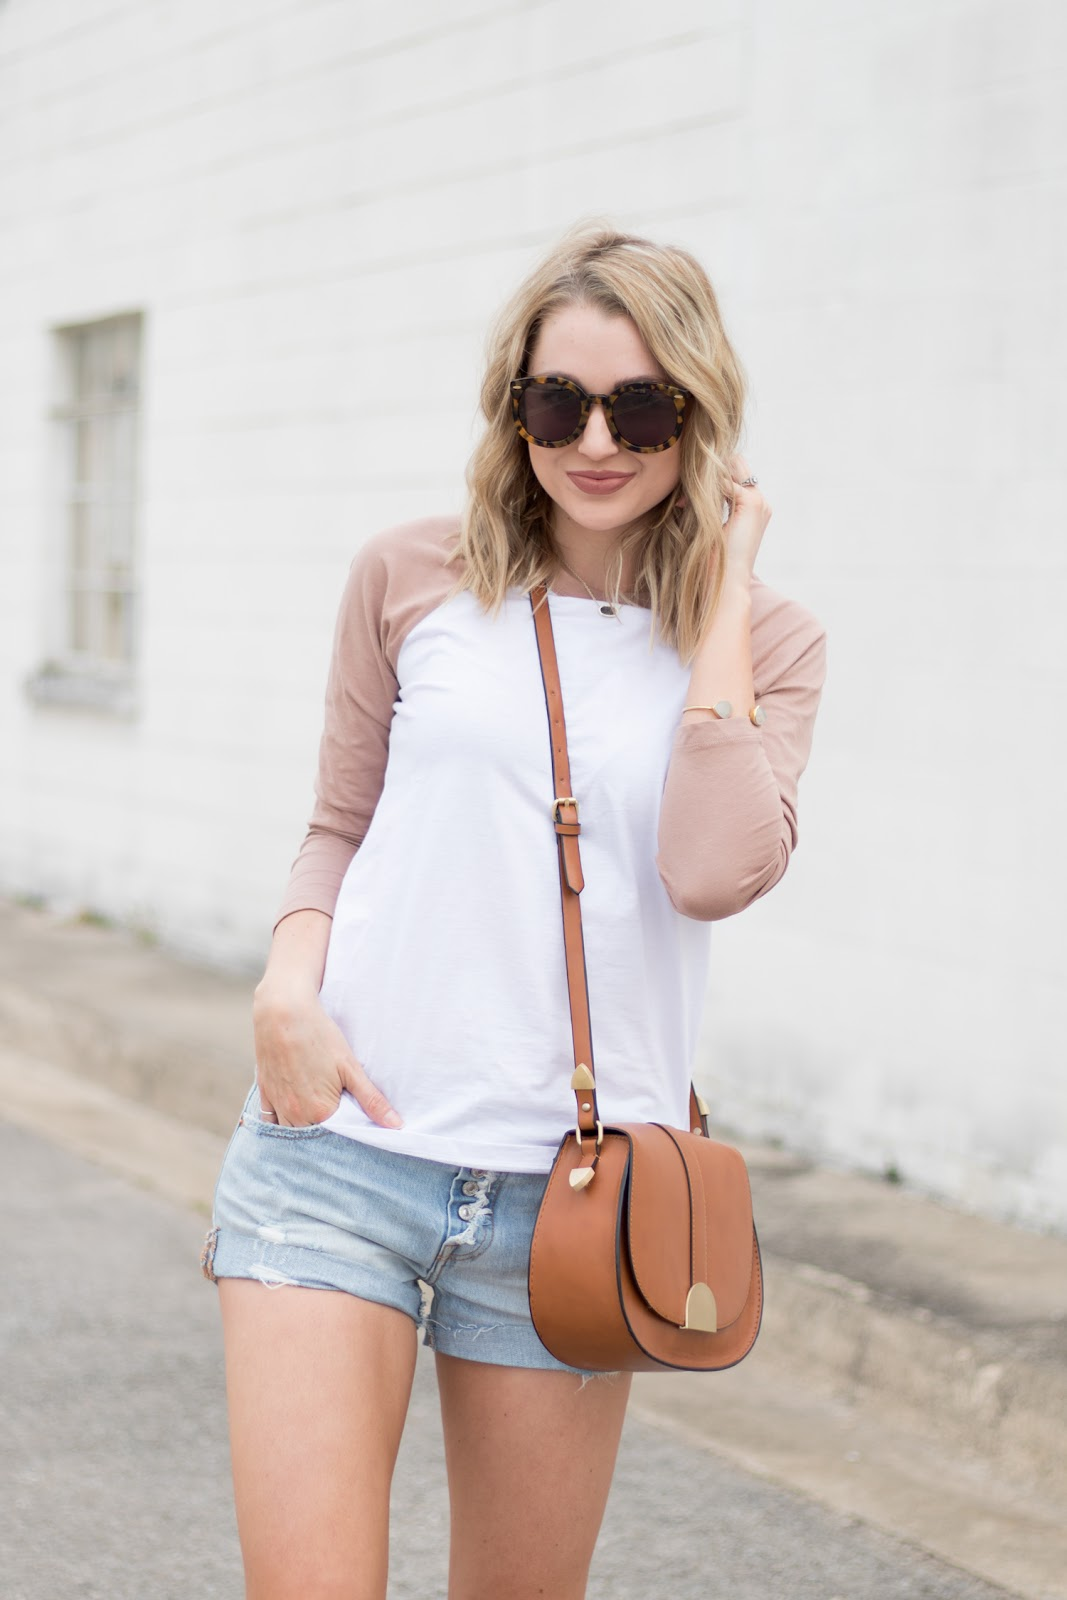 Baseball tee with shorts for spring